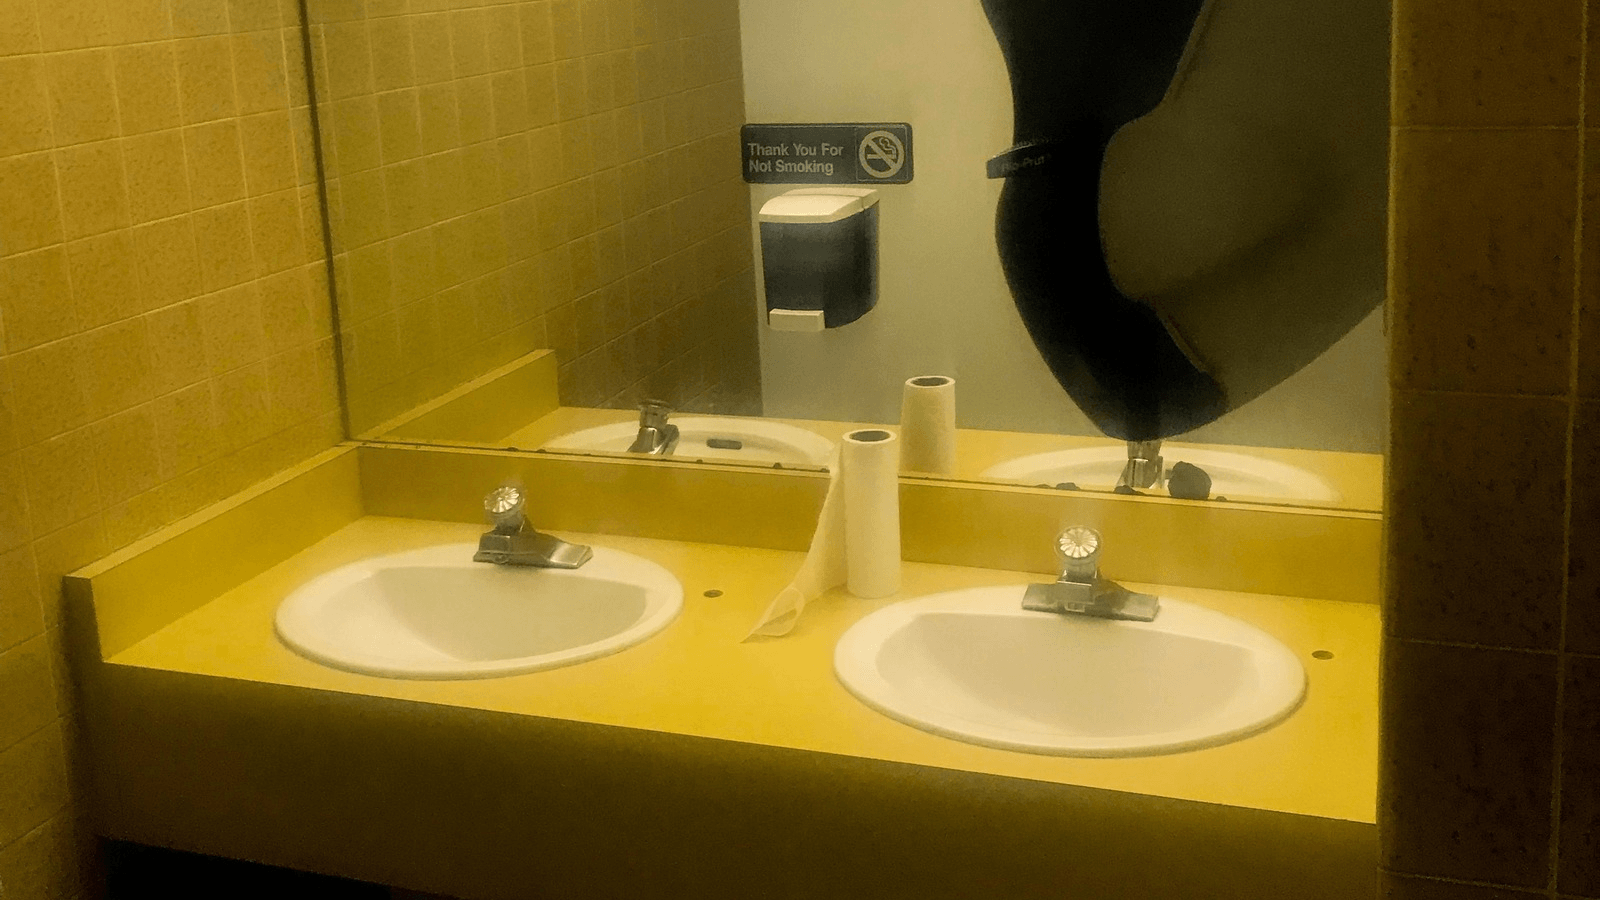 sinks where migrant children allegedly bathed in Phoenix